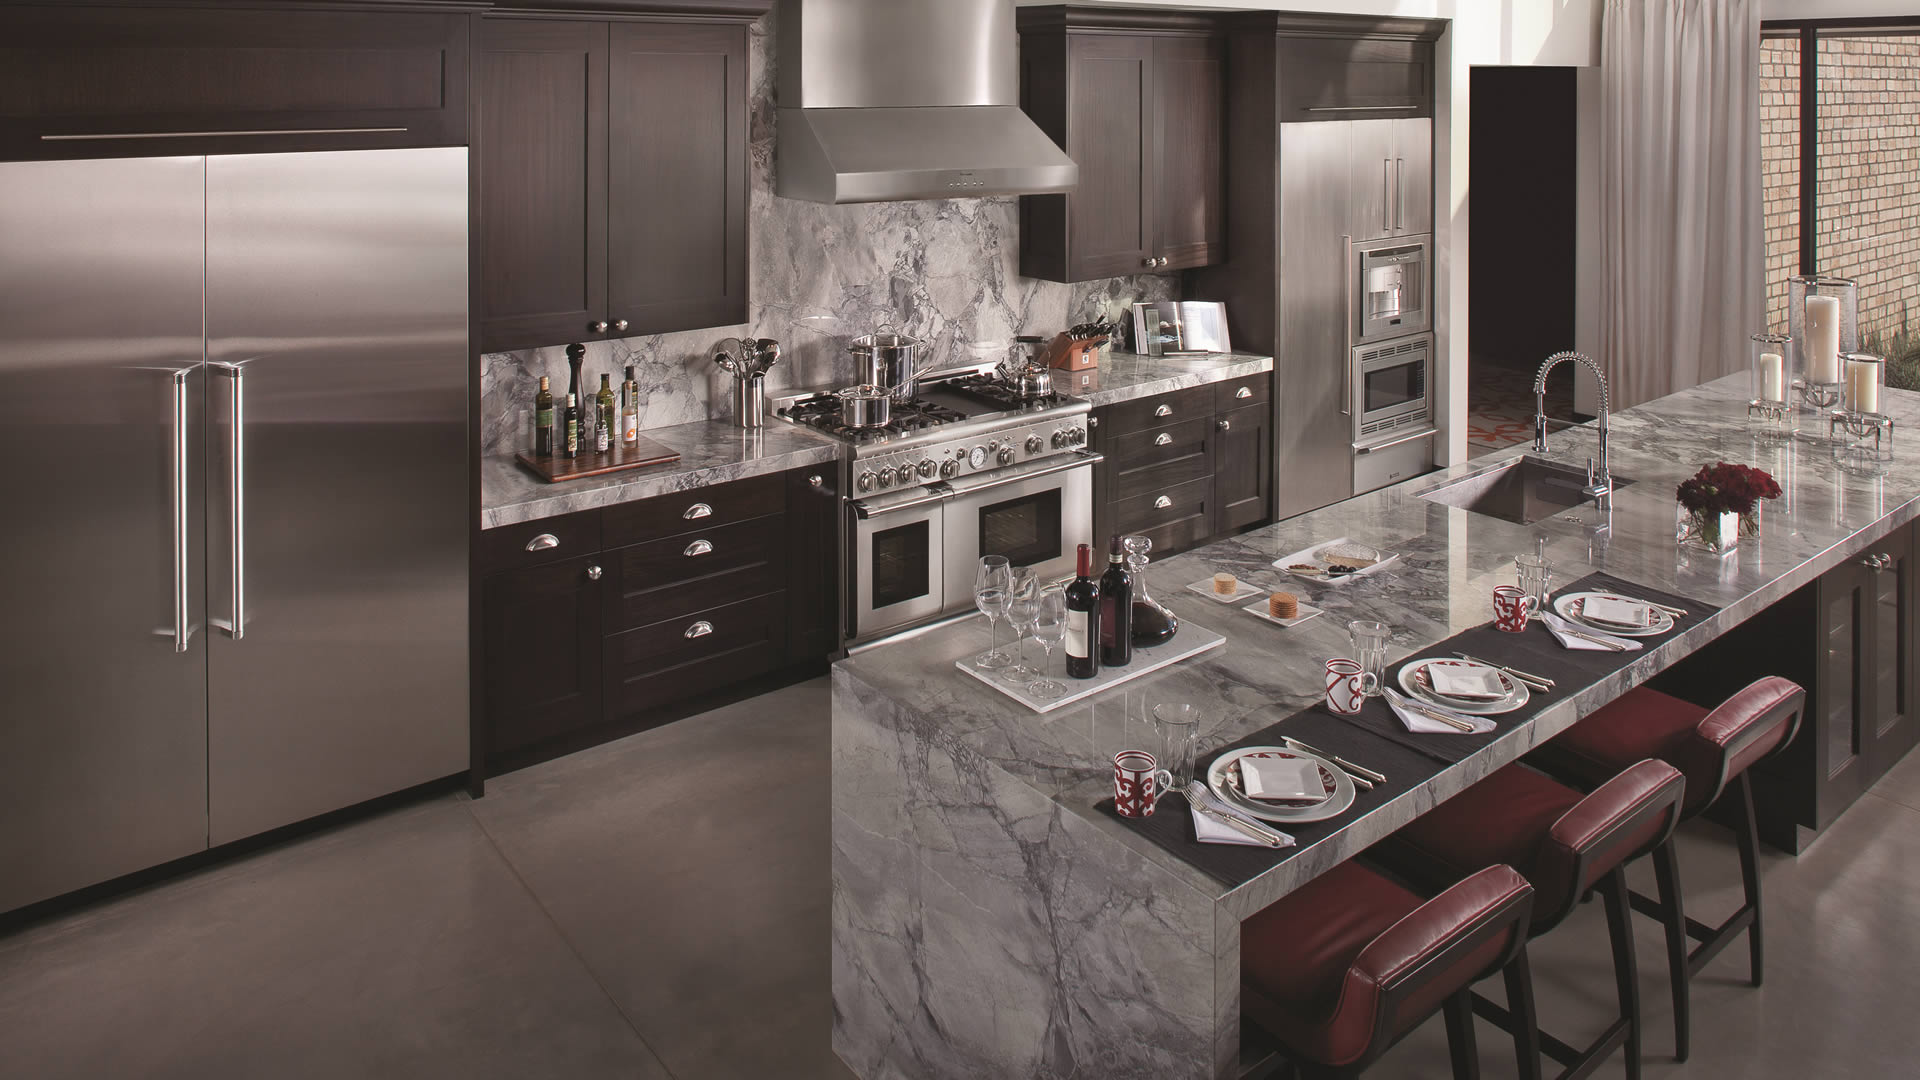 Thermador Fine Luxury Kitchen Appliances Nordic